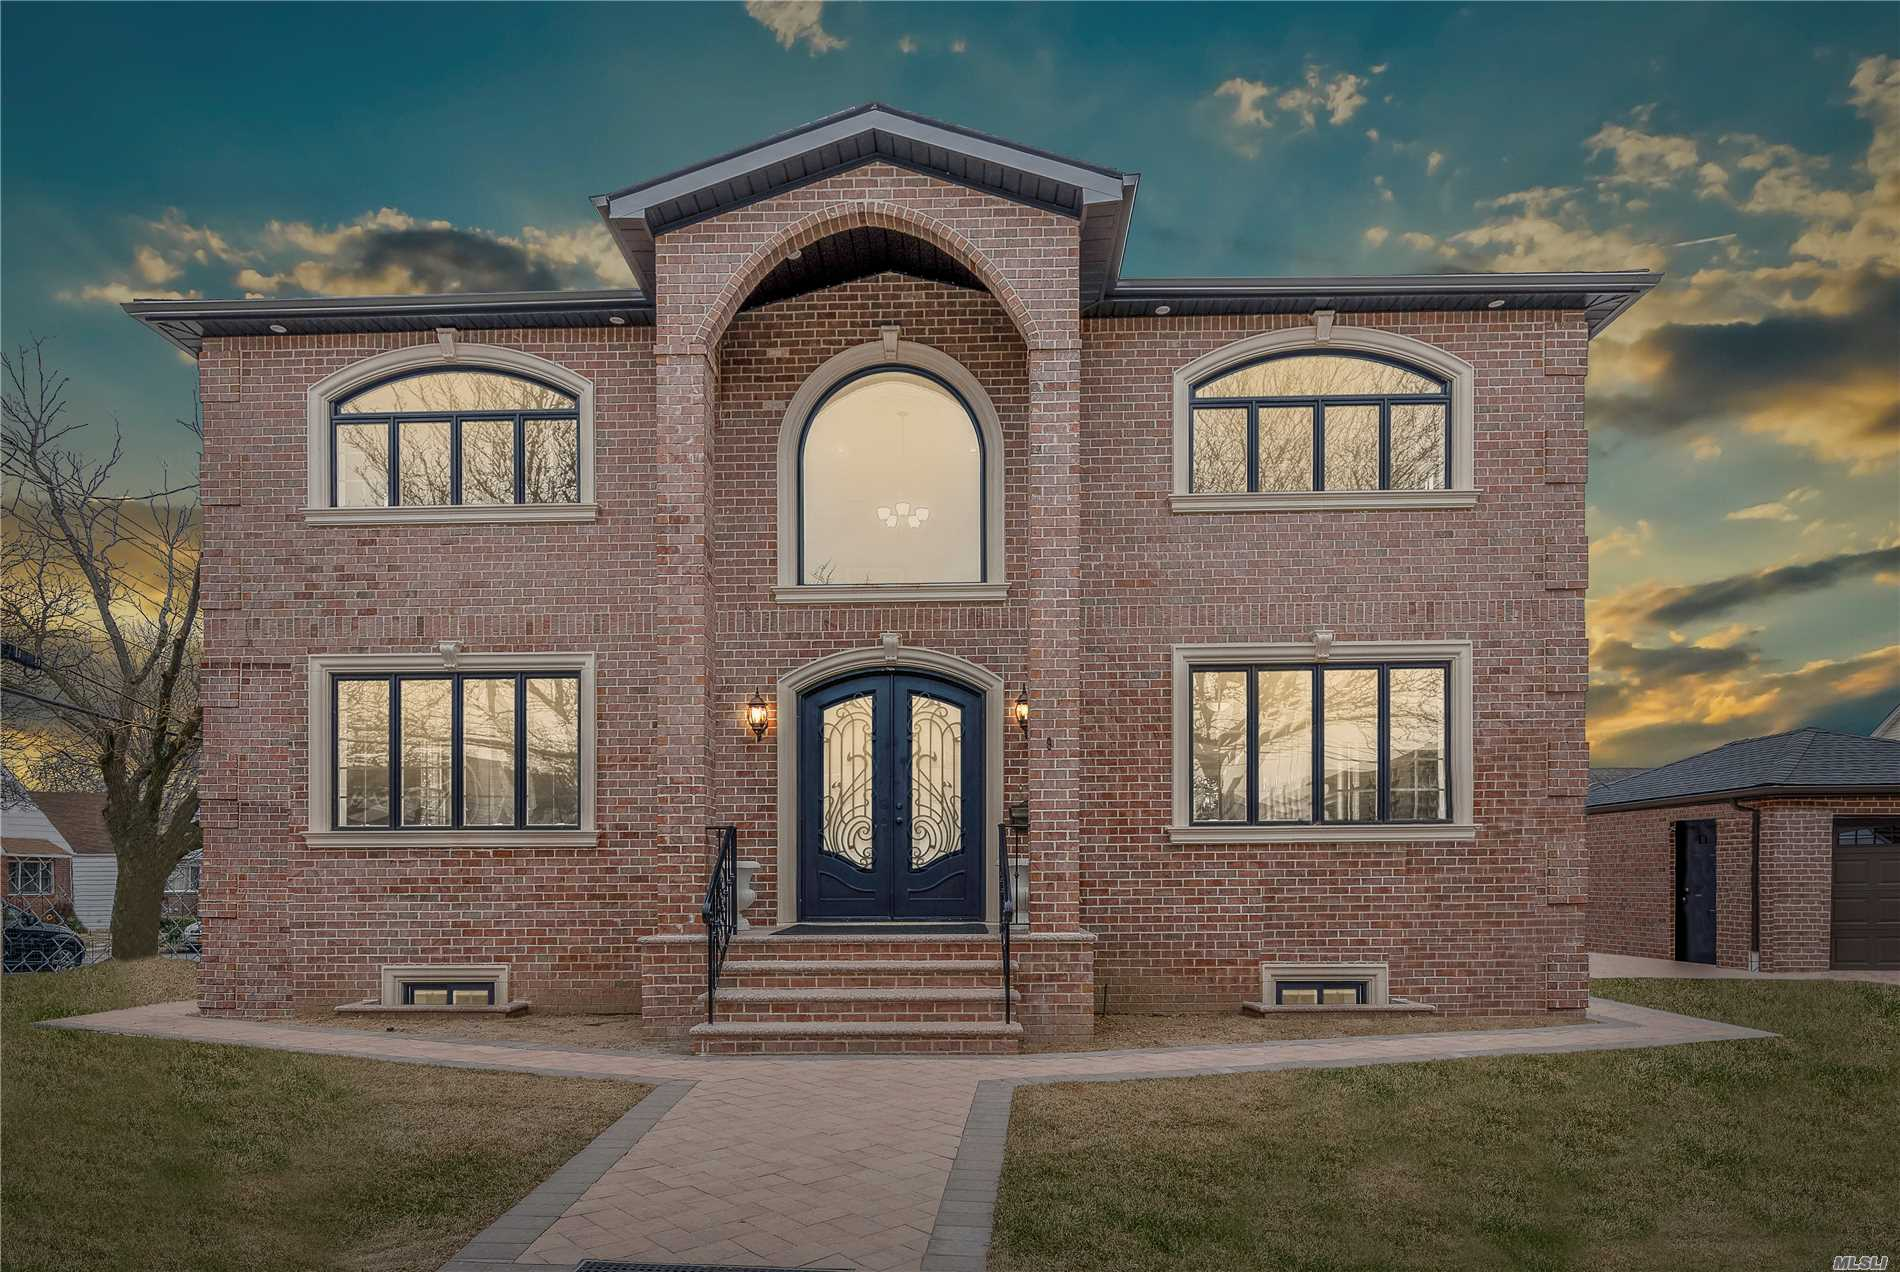 Elegant Newly Constructed 5 Bedroom, 4.5 Bathroom Brick Colonial On A 60X100 Lot W/Unparalleled Craftmanship & Design! Open & Inviting 3000 Sqft. Floor Plan W/Great Flow For Entertaining. Features Include Gas Fireplace, Crown Moulding, Hardwood Floors, Gourmet Kitchen W/ Cherry Cabinets, Quartz Countertops, & Custom Windows That Provide Plenty Of Natural Lighting Throughout. Master Suite With 2 Wic, Oversized Bedrooms, Custom Baths, & Spacious Basement W/ High Ceilings, Ose. 1 Car Garage. Sd#26